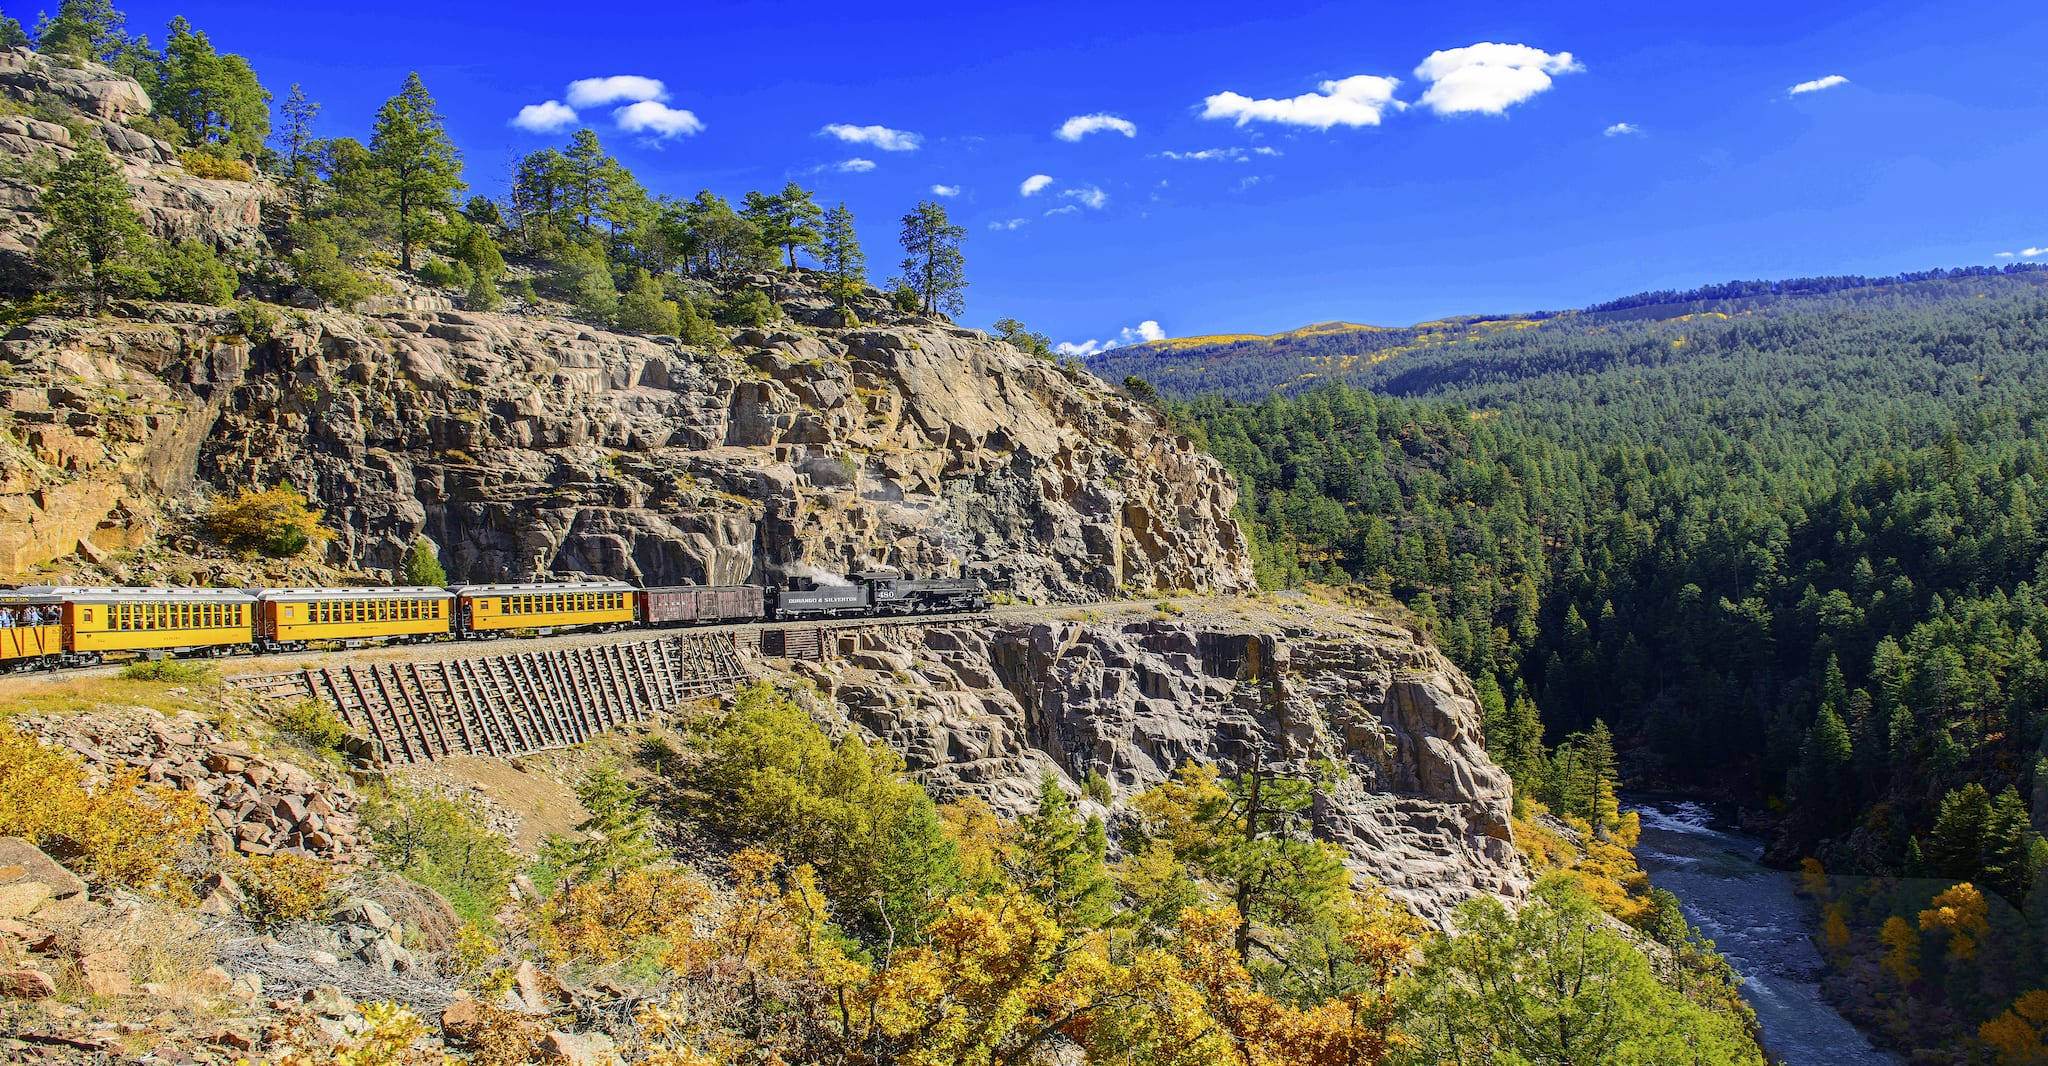 Durango and Silverton Railroad Animas River Canyon Colorado